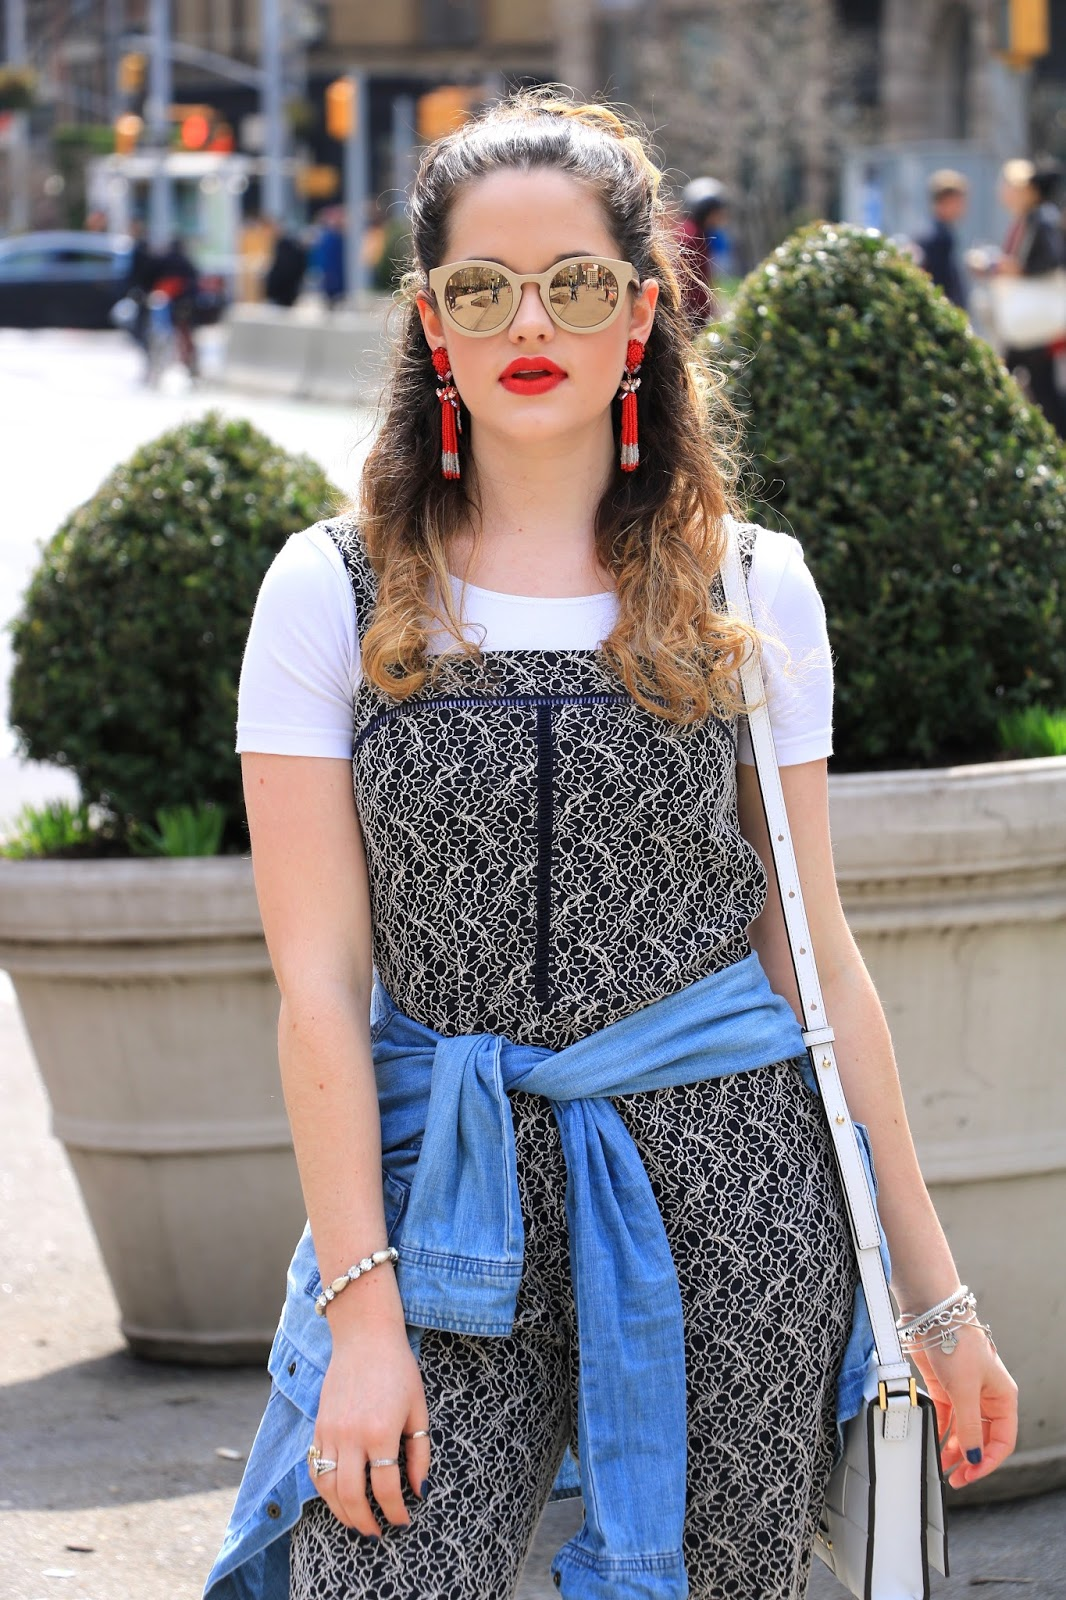 Nyc fashion blogger Kathleen Harper's spring trends